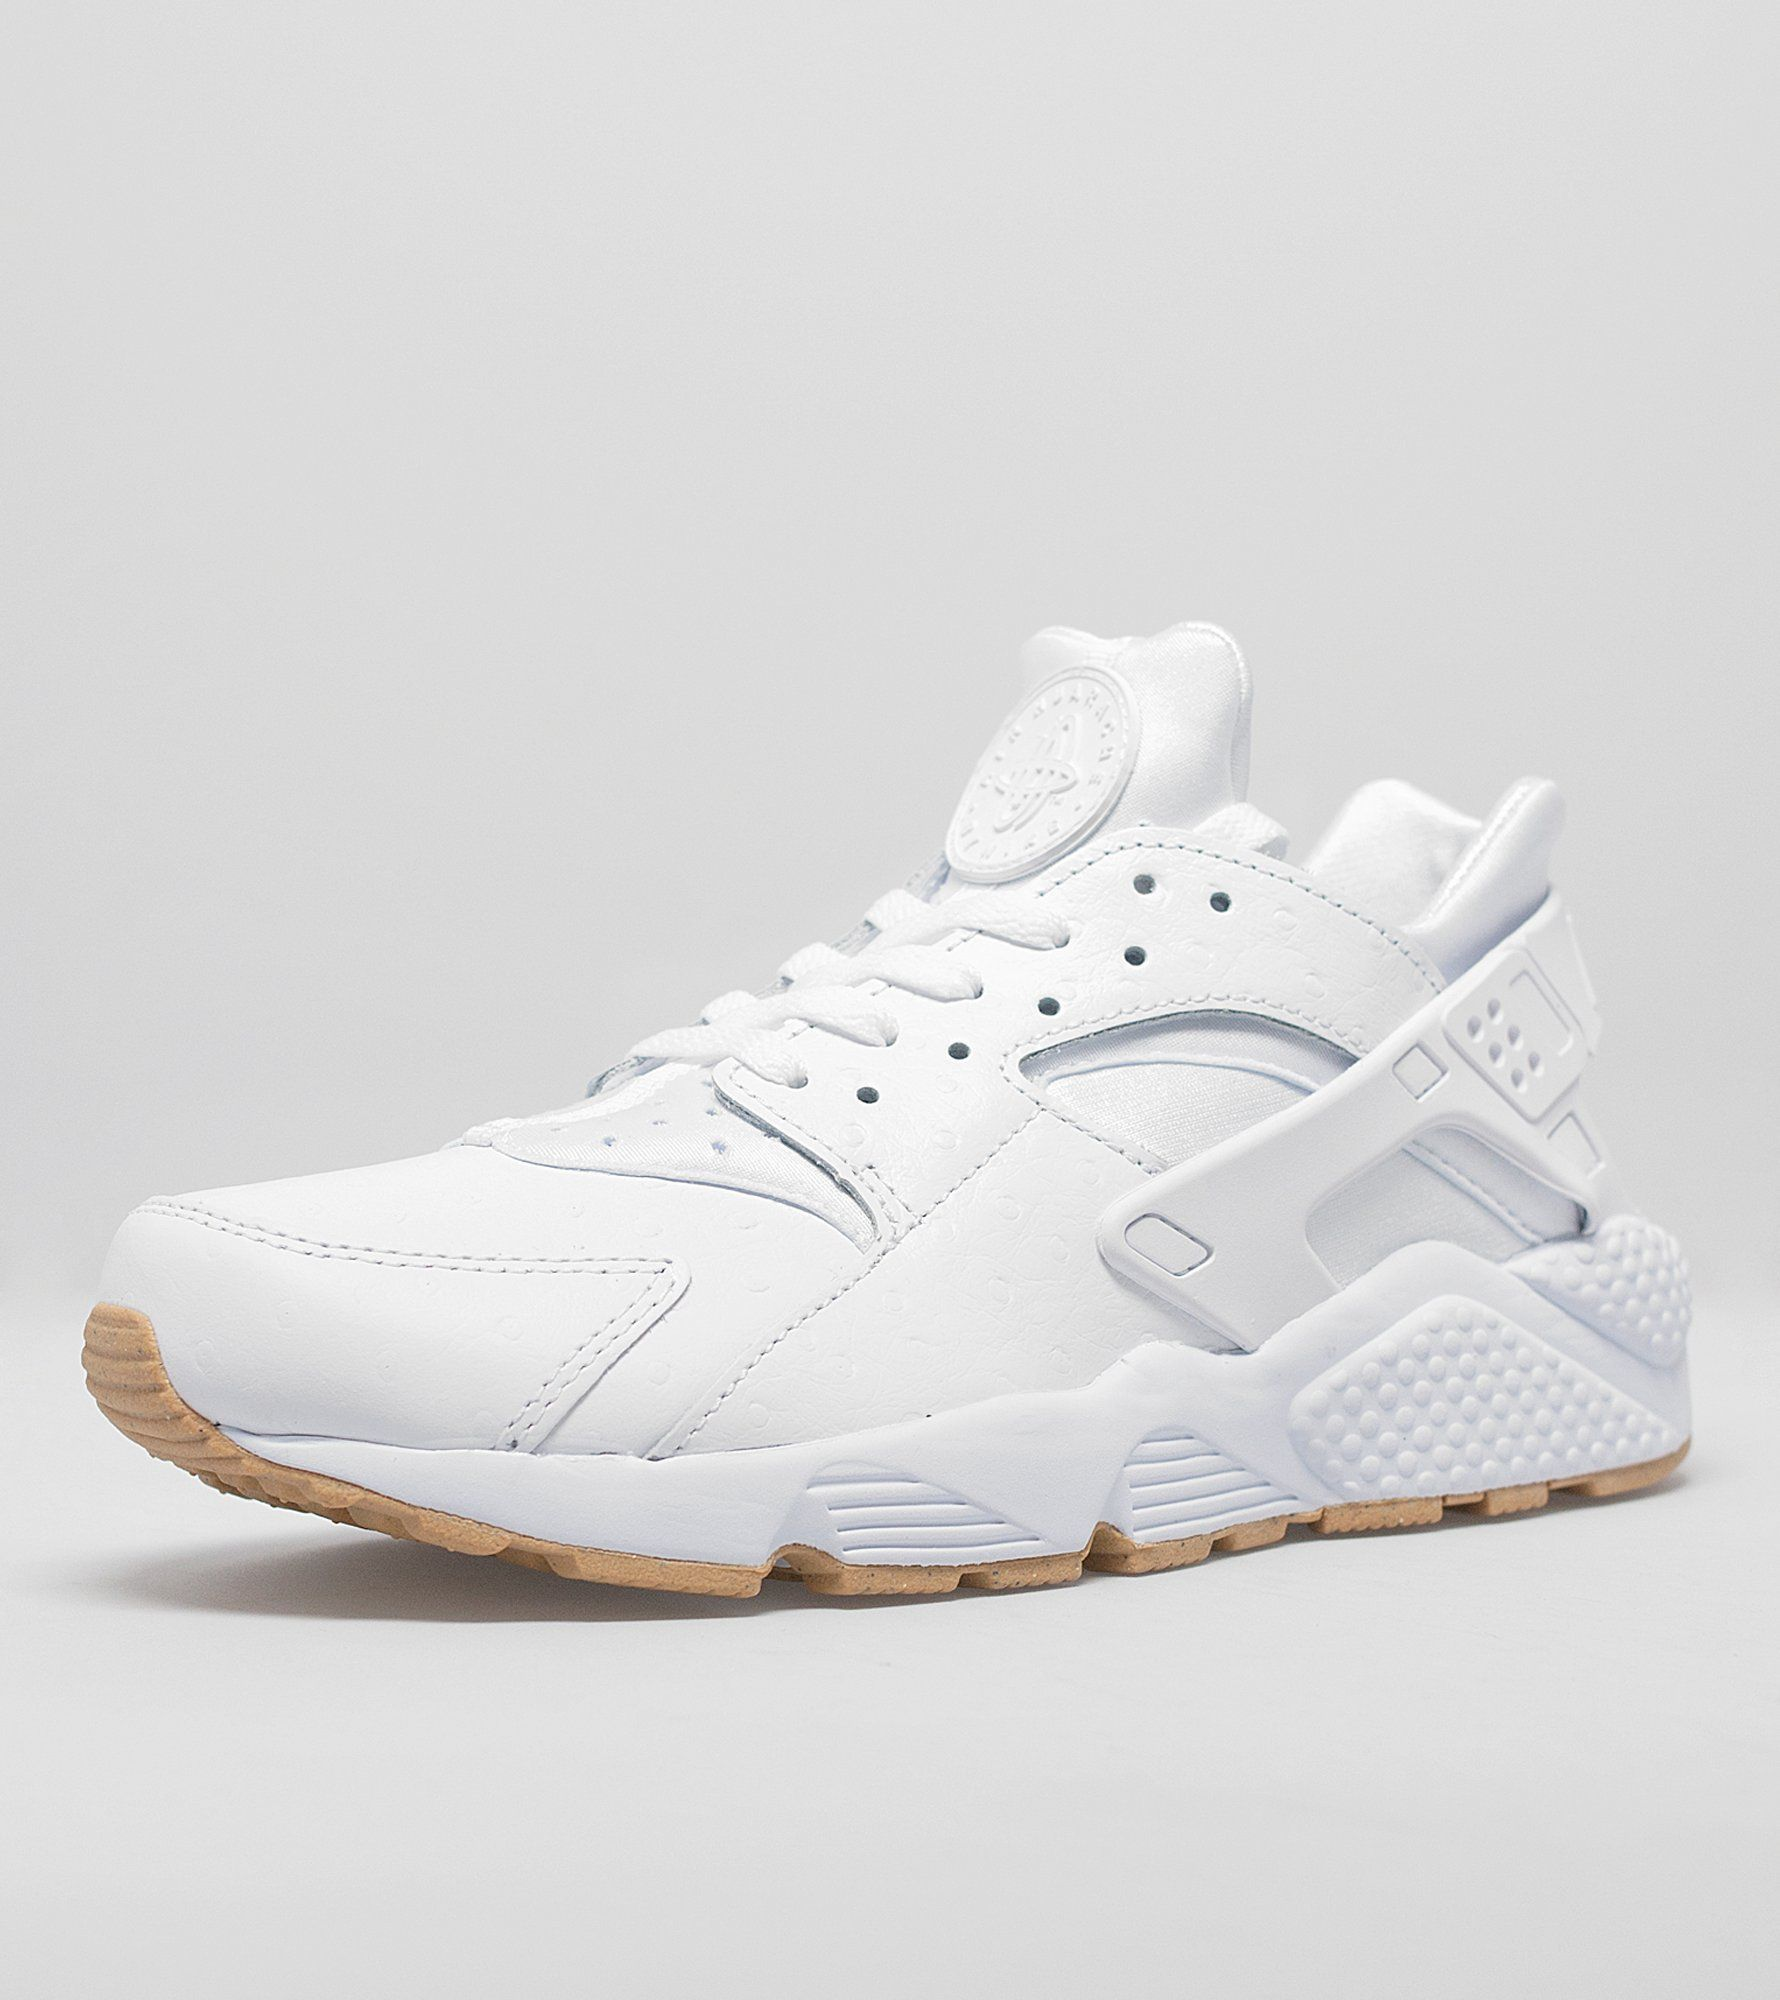 best value 2110c e634b Nike Air Huarache Premium  White   Gum Pack  - find out more on our site.  Find the freshest in trainers and clothing online now.